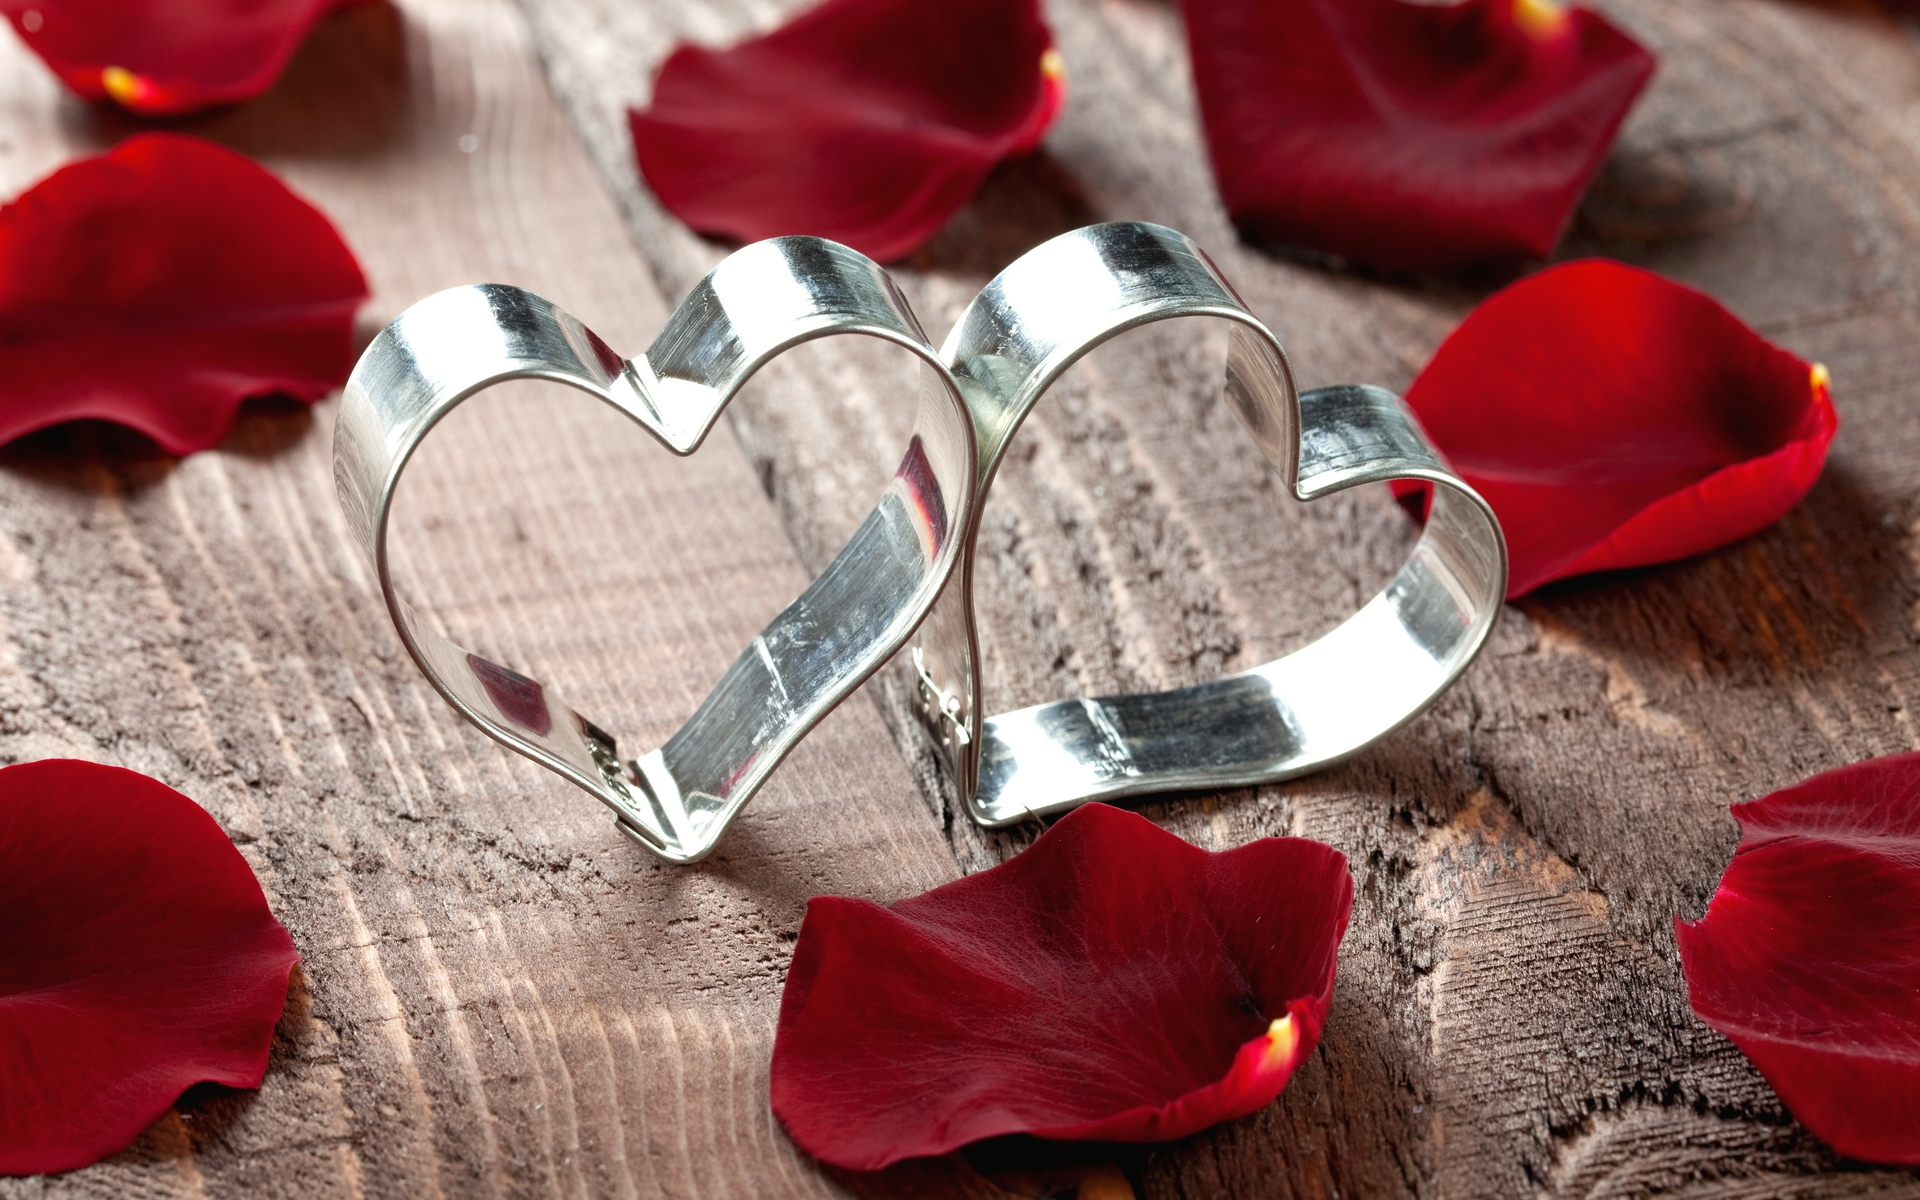 37206 download wallpaper Holidays, Hearts, Valentine's Day screensavers and pictures for free